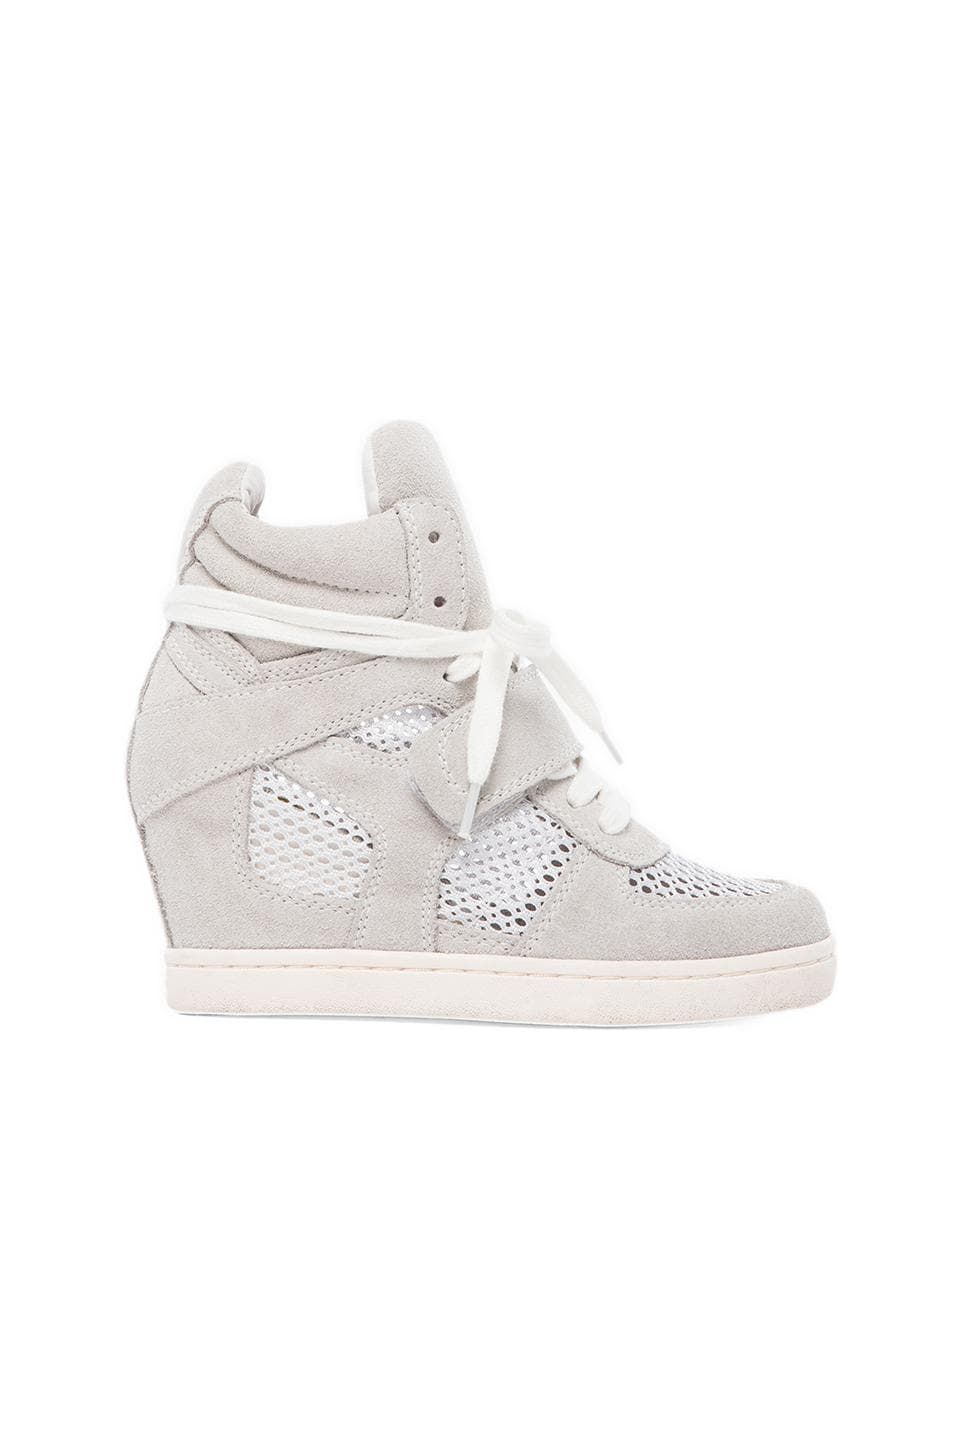 Ash Cool Mesh Sneaker in Off White & White